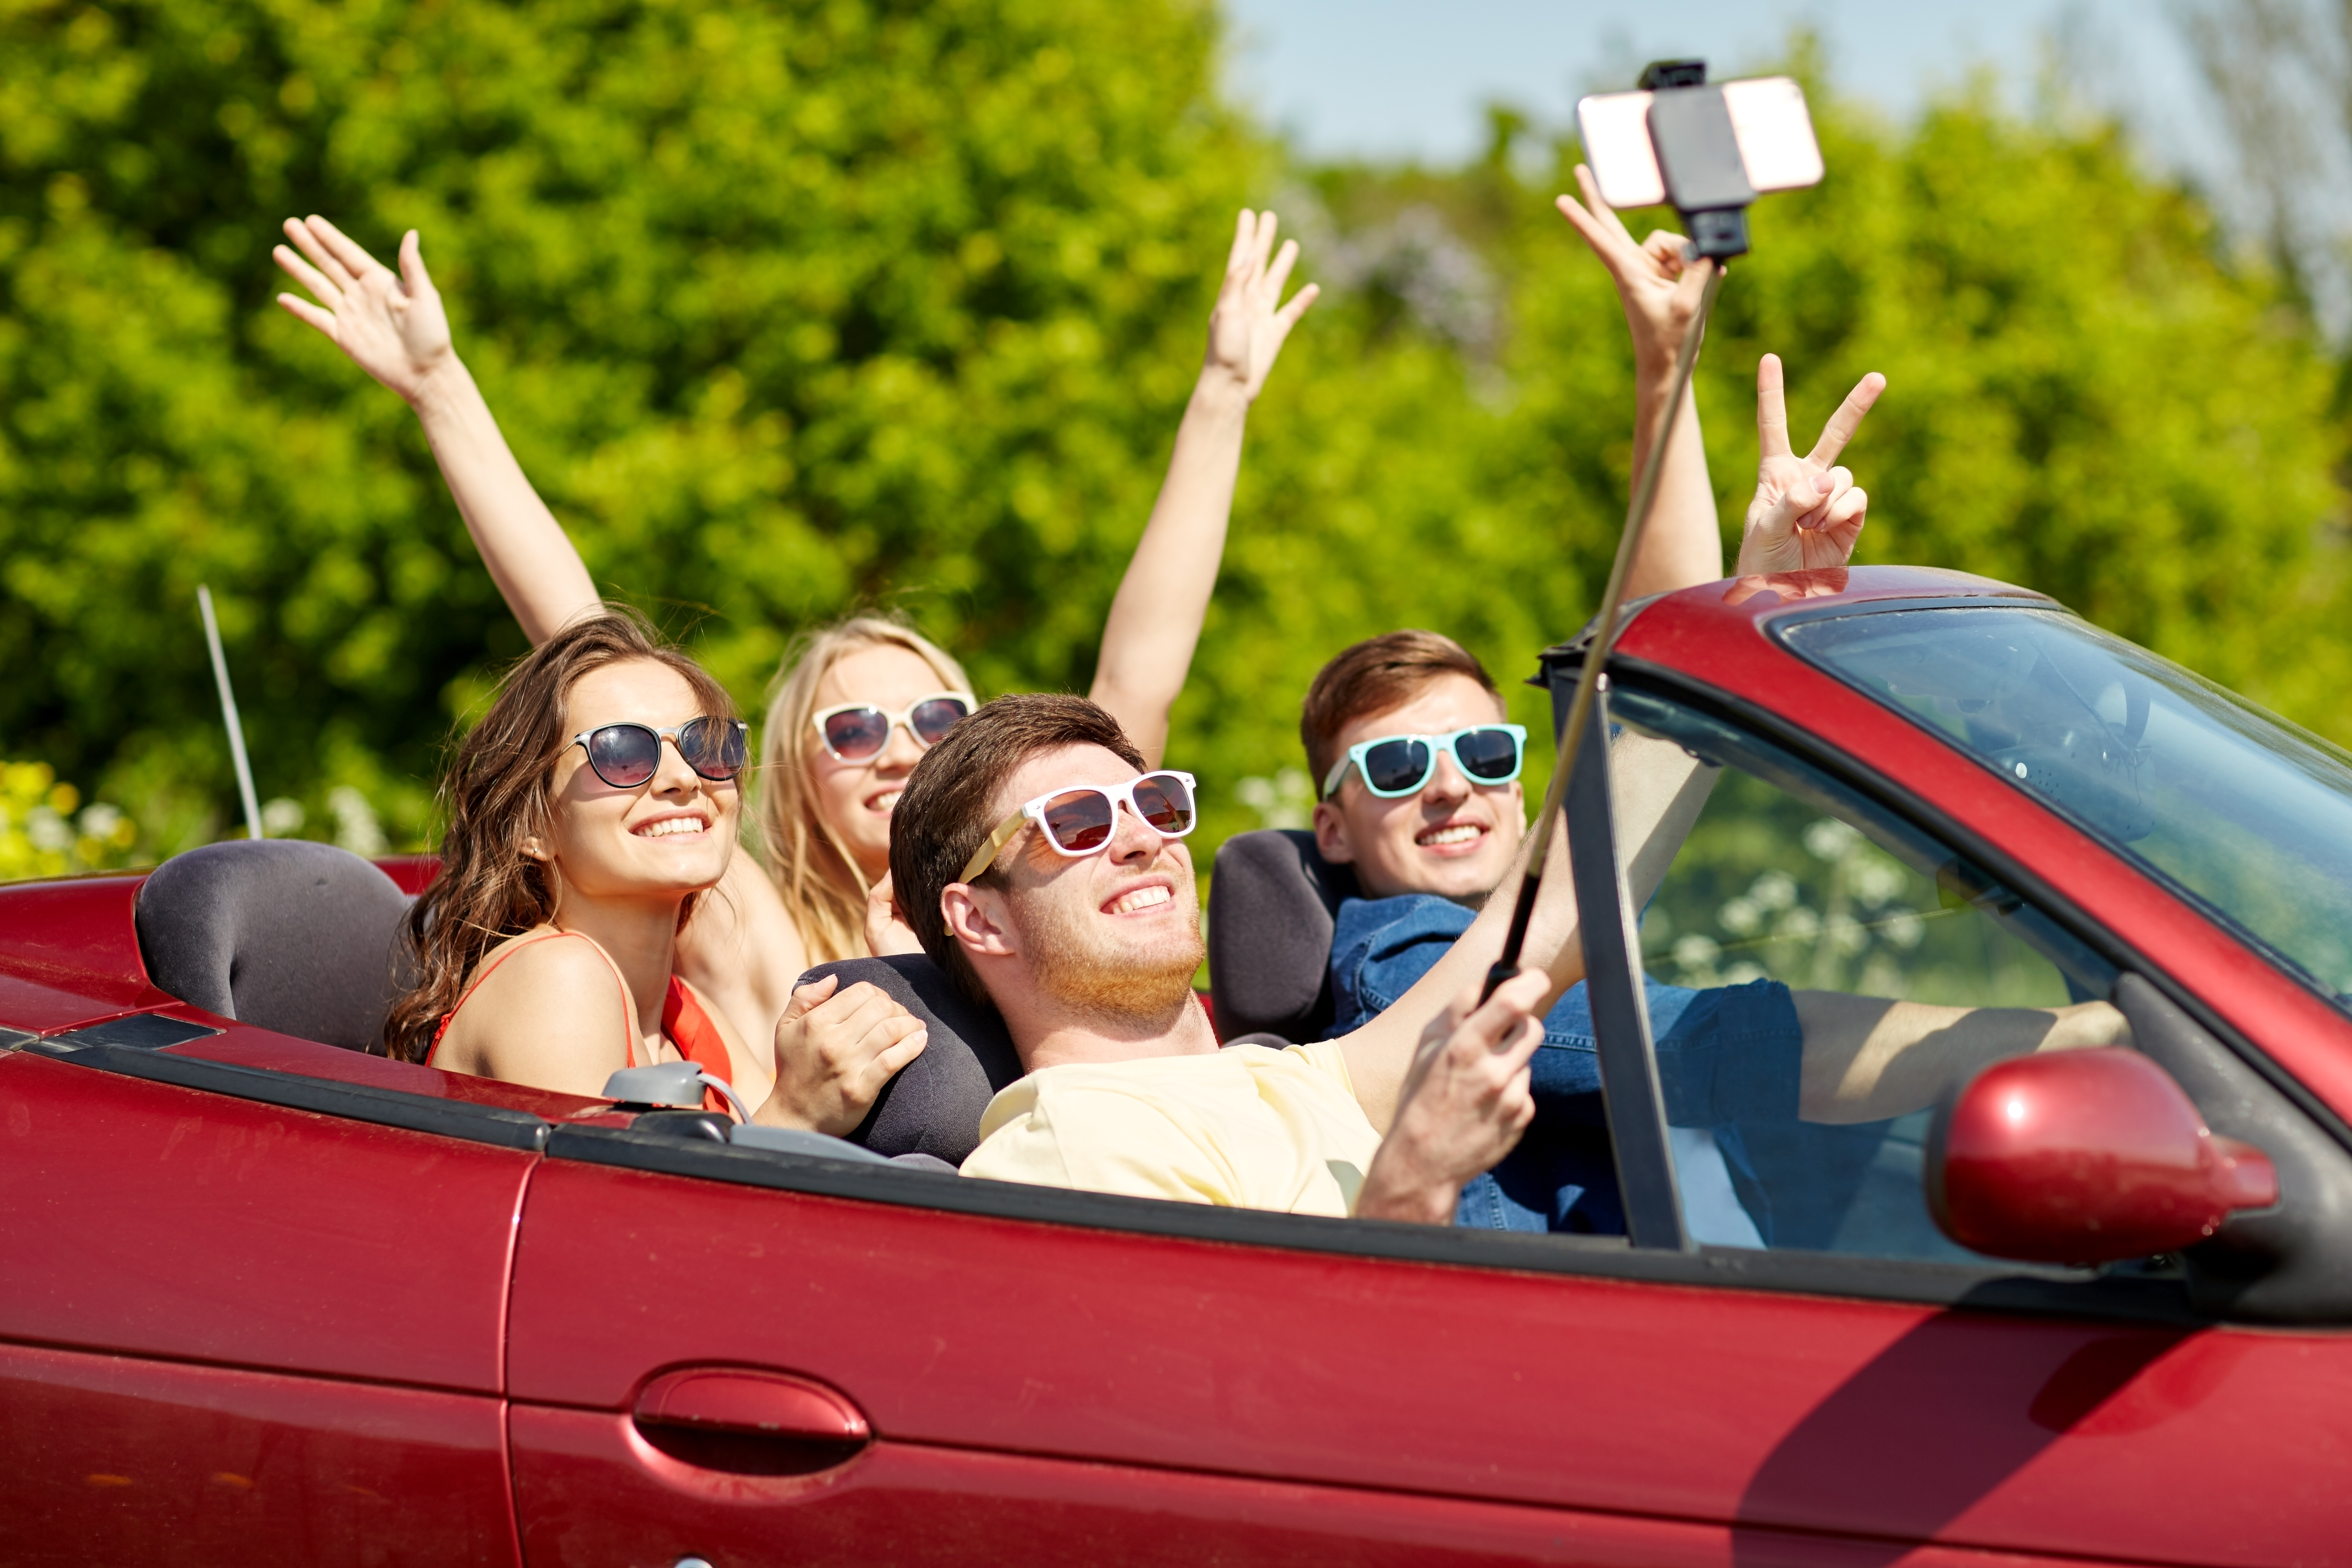 Summer Road Trip by Car and Safety Tips